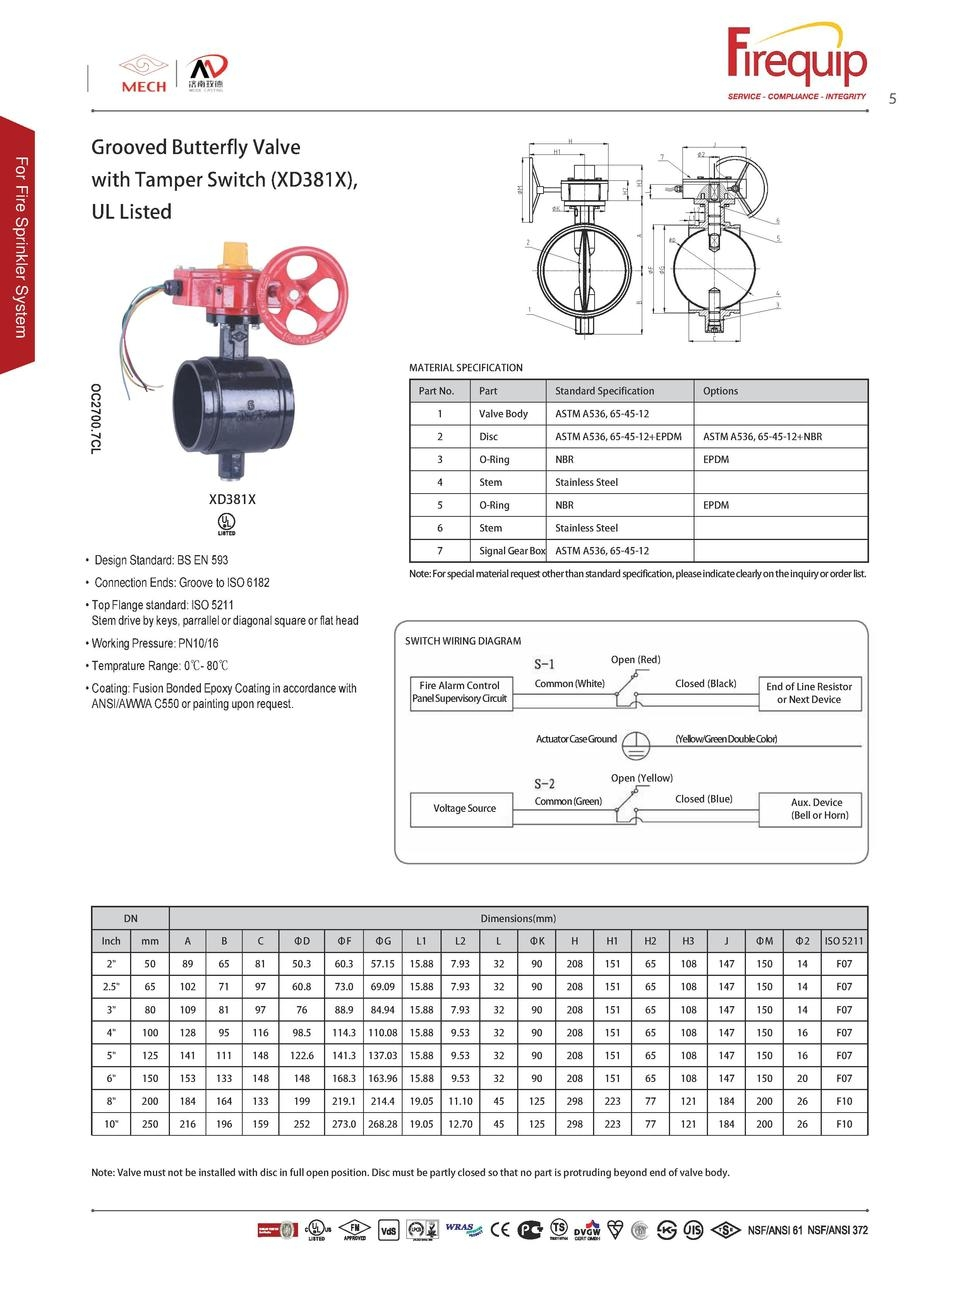 medium resolution of butterfly valve wiring diagram butterfly valve wiring diagram elegant mech valves catalogue simplebooklet 16j